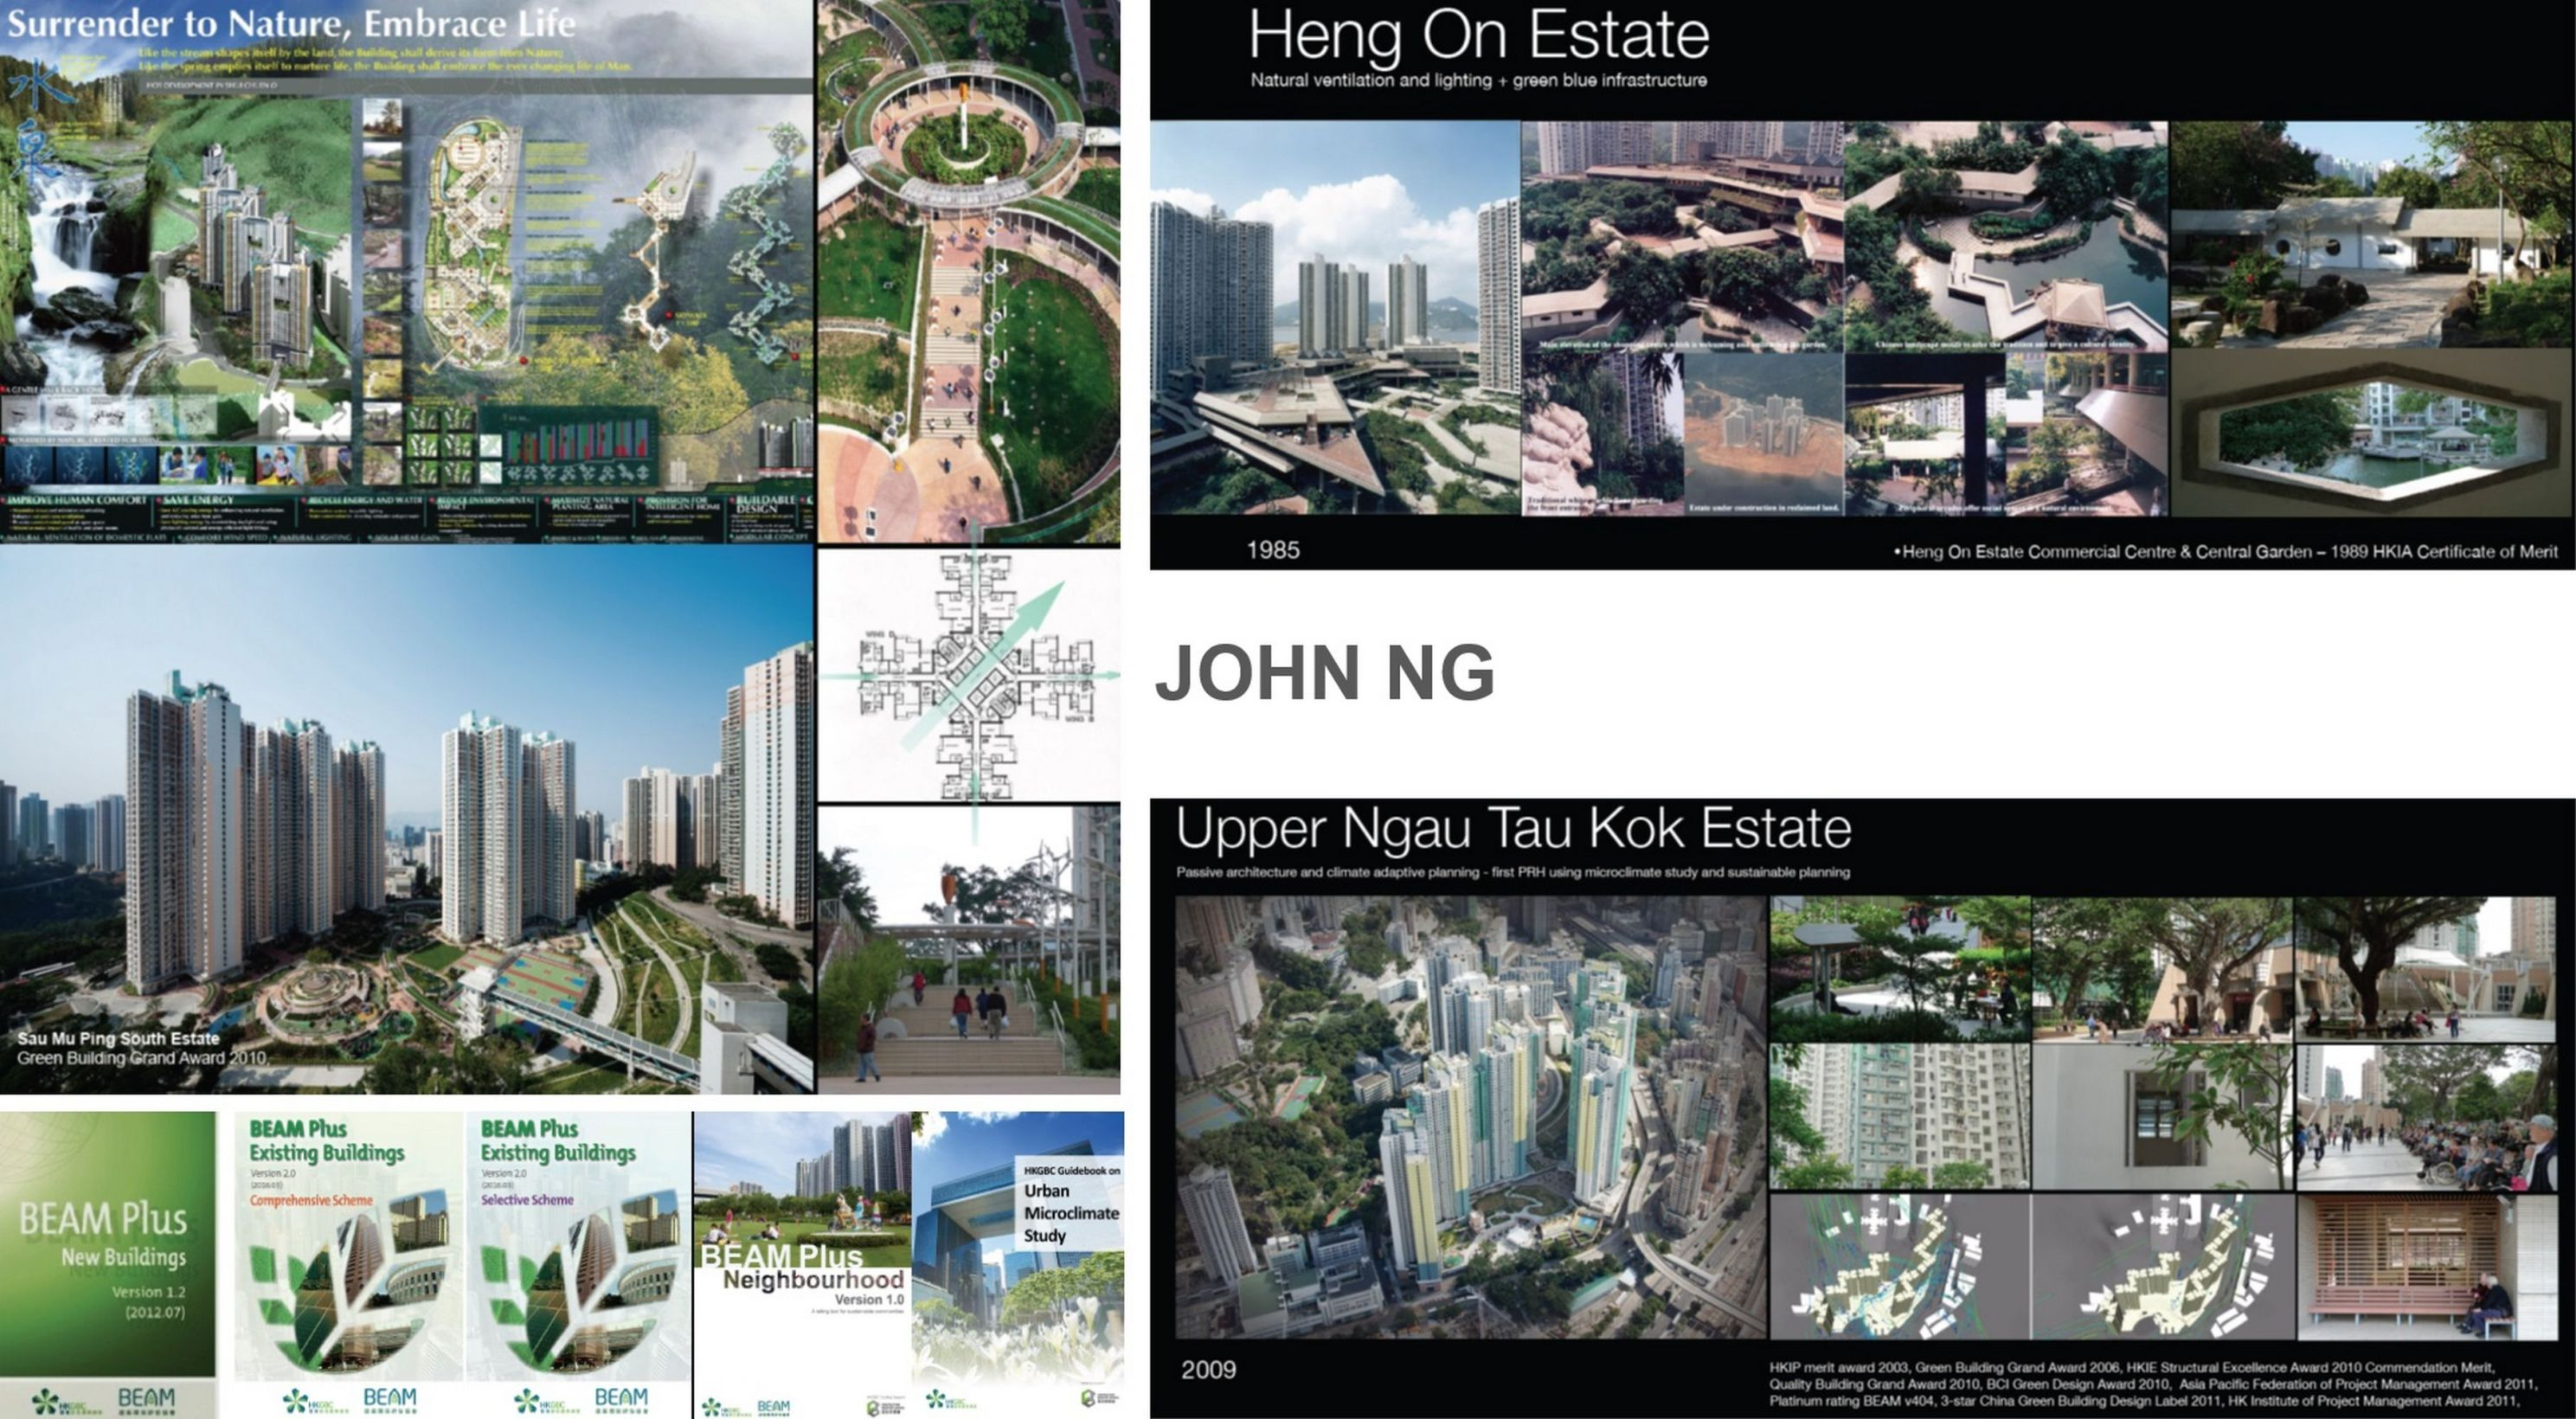 Projects by Mr. John Ng